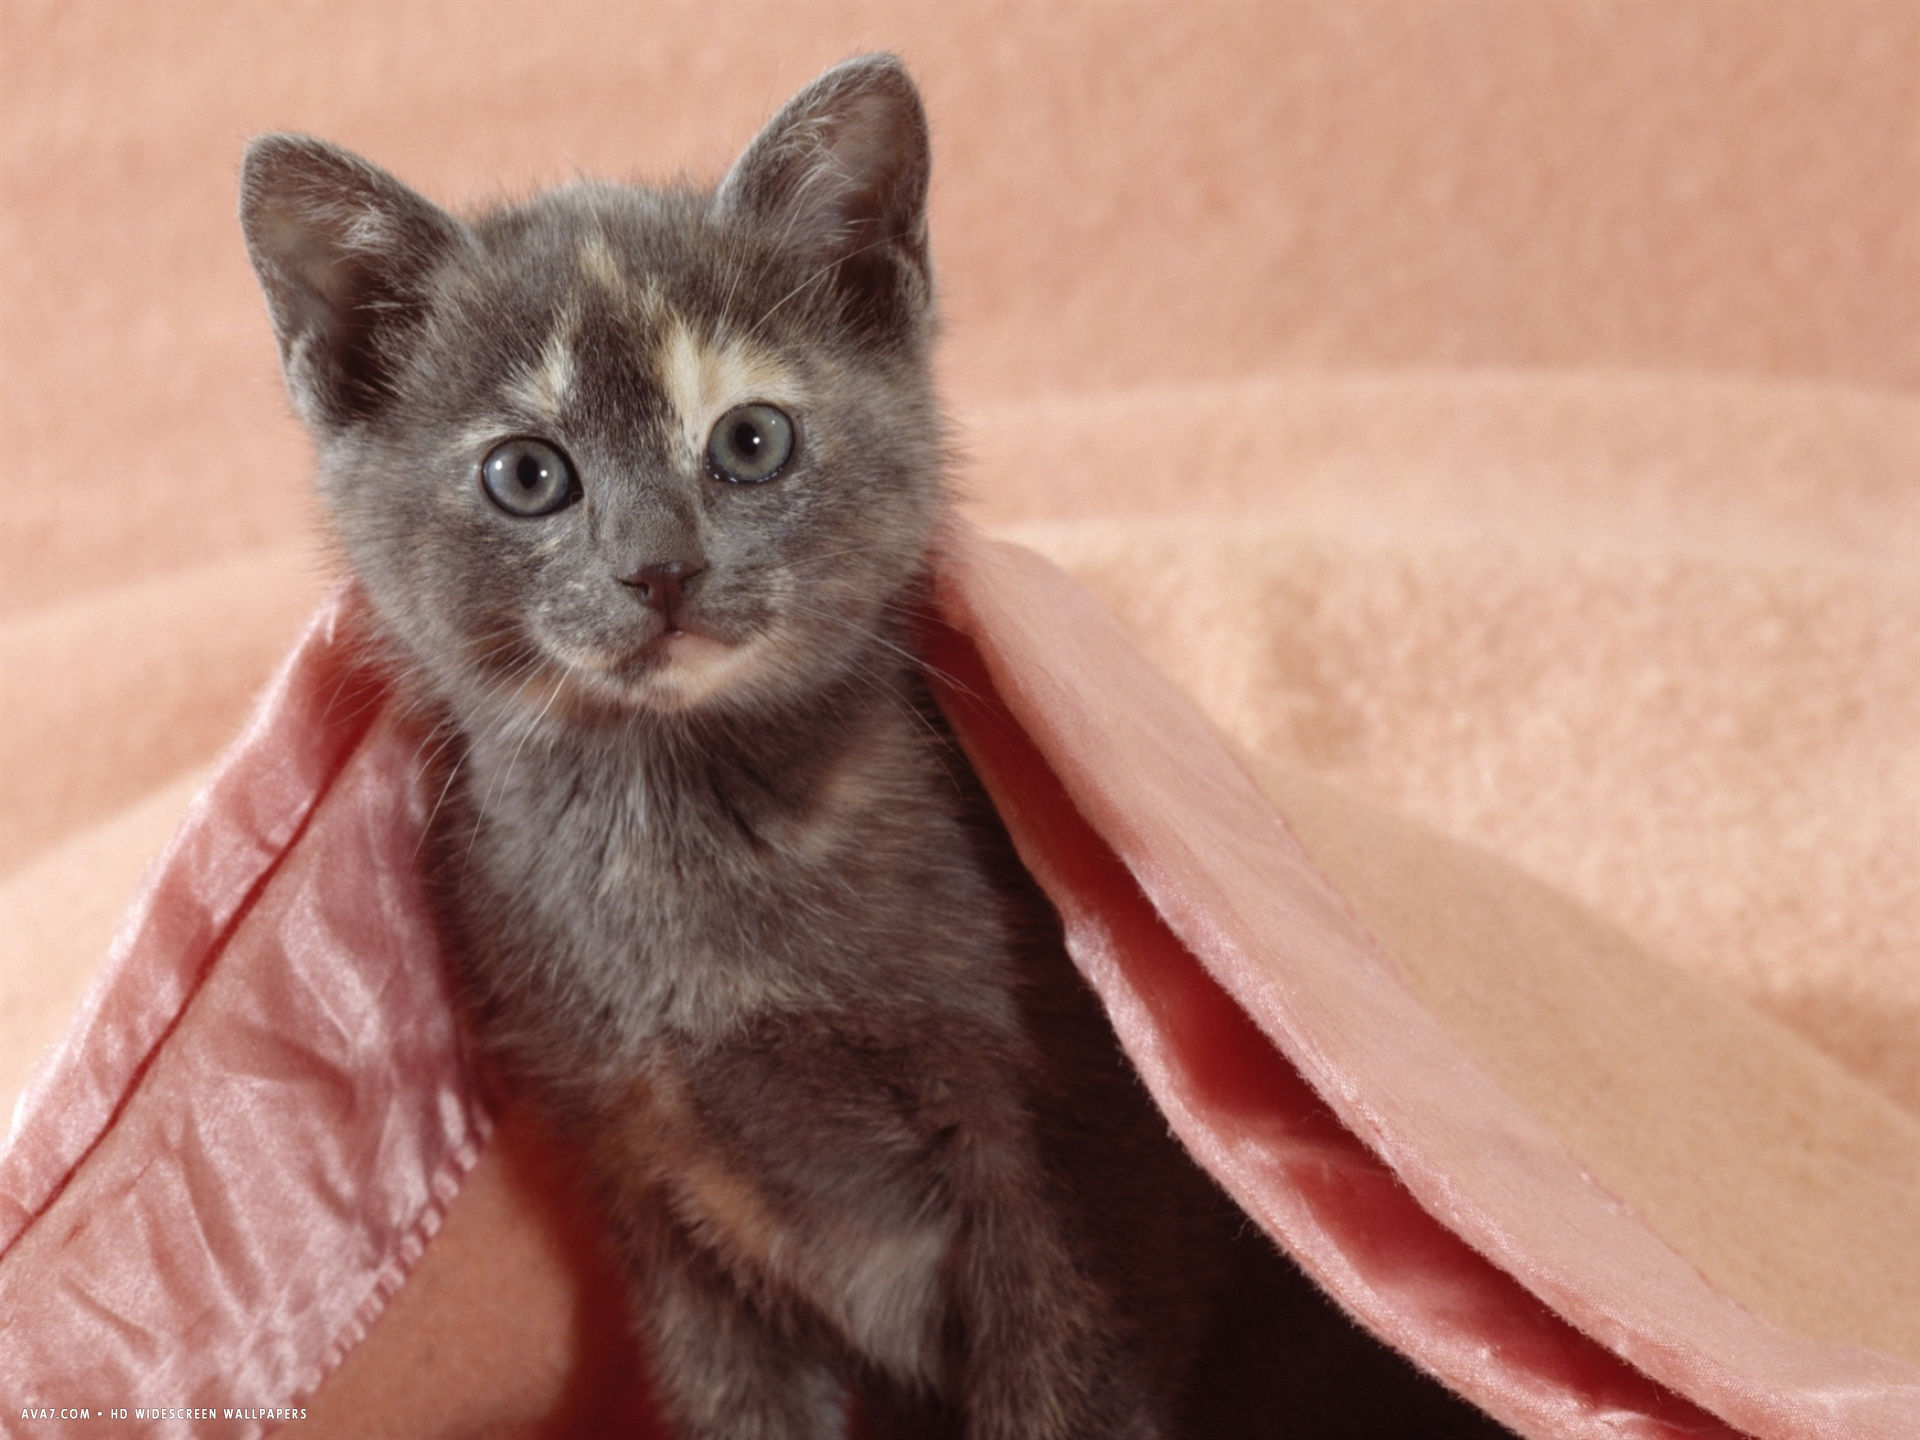 blue cream kitten in a pink blanket bedroom